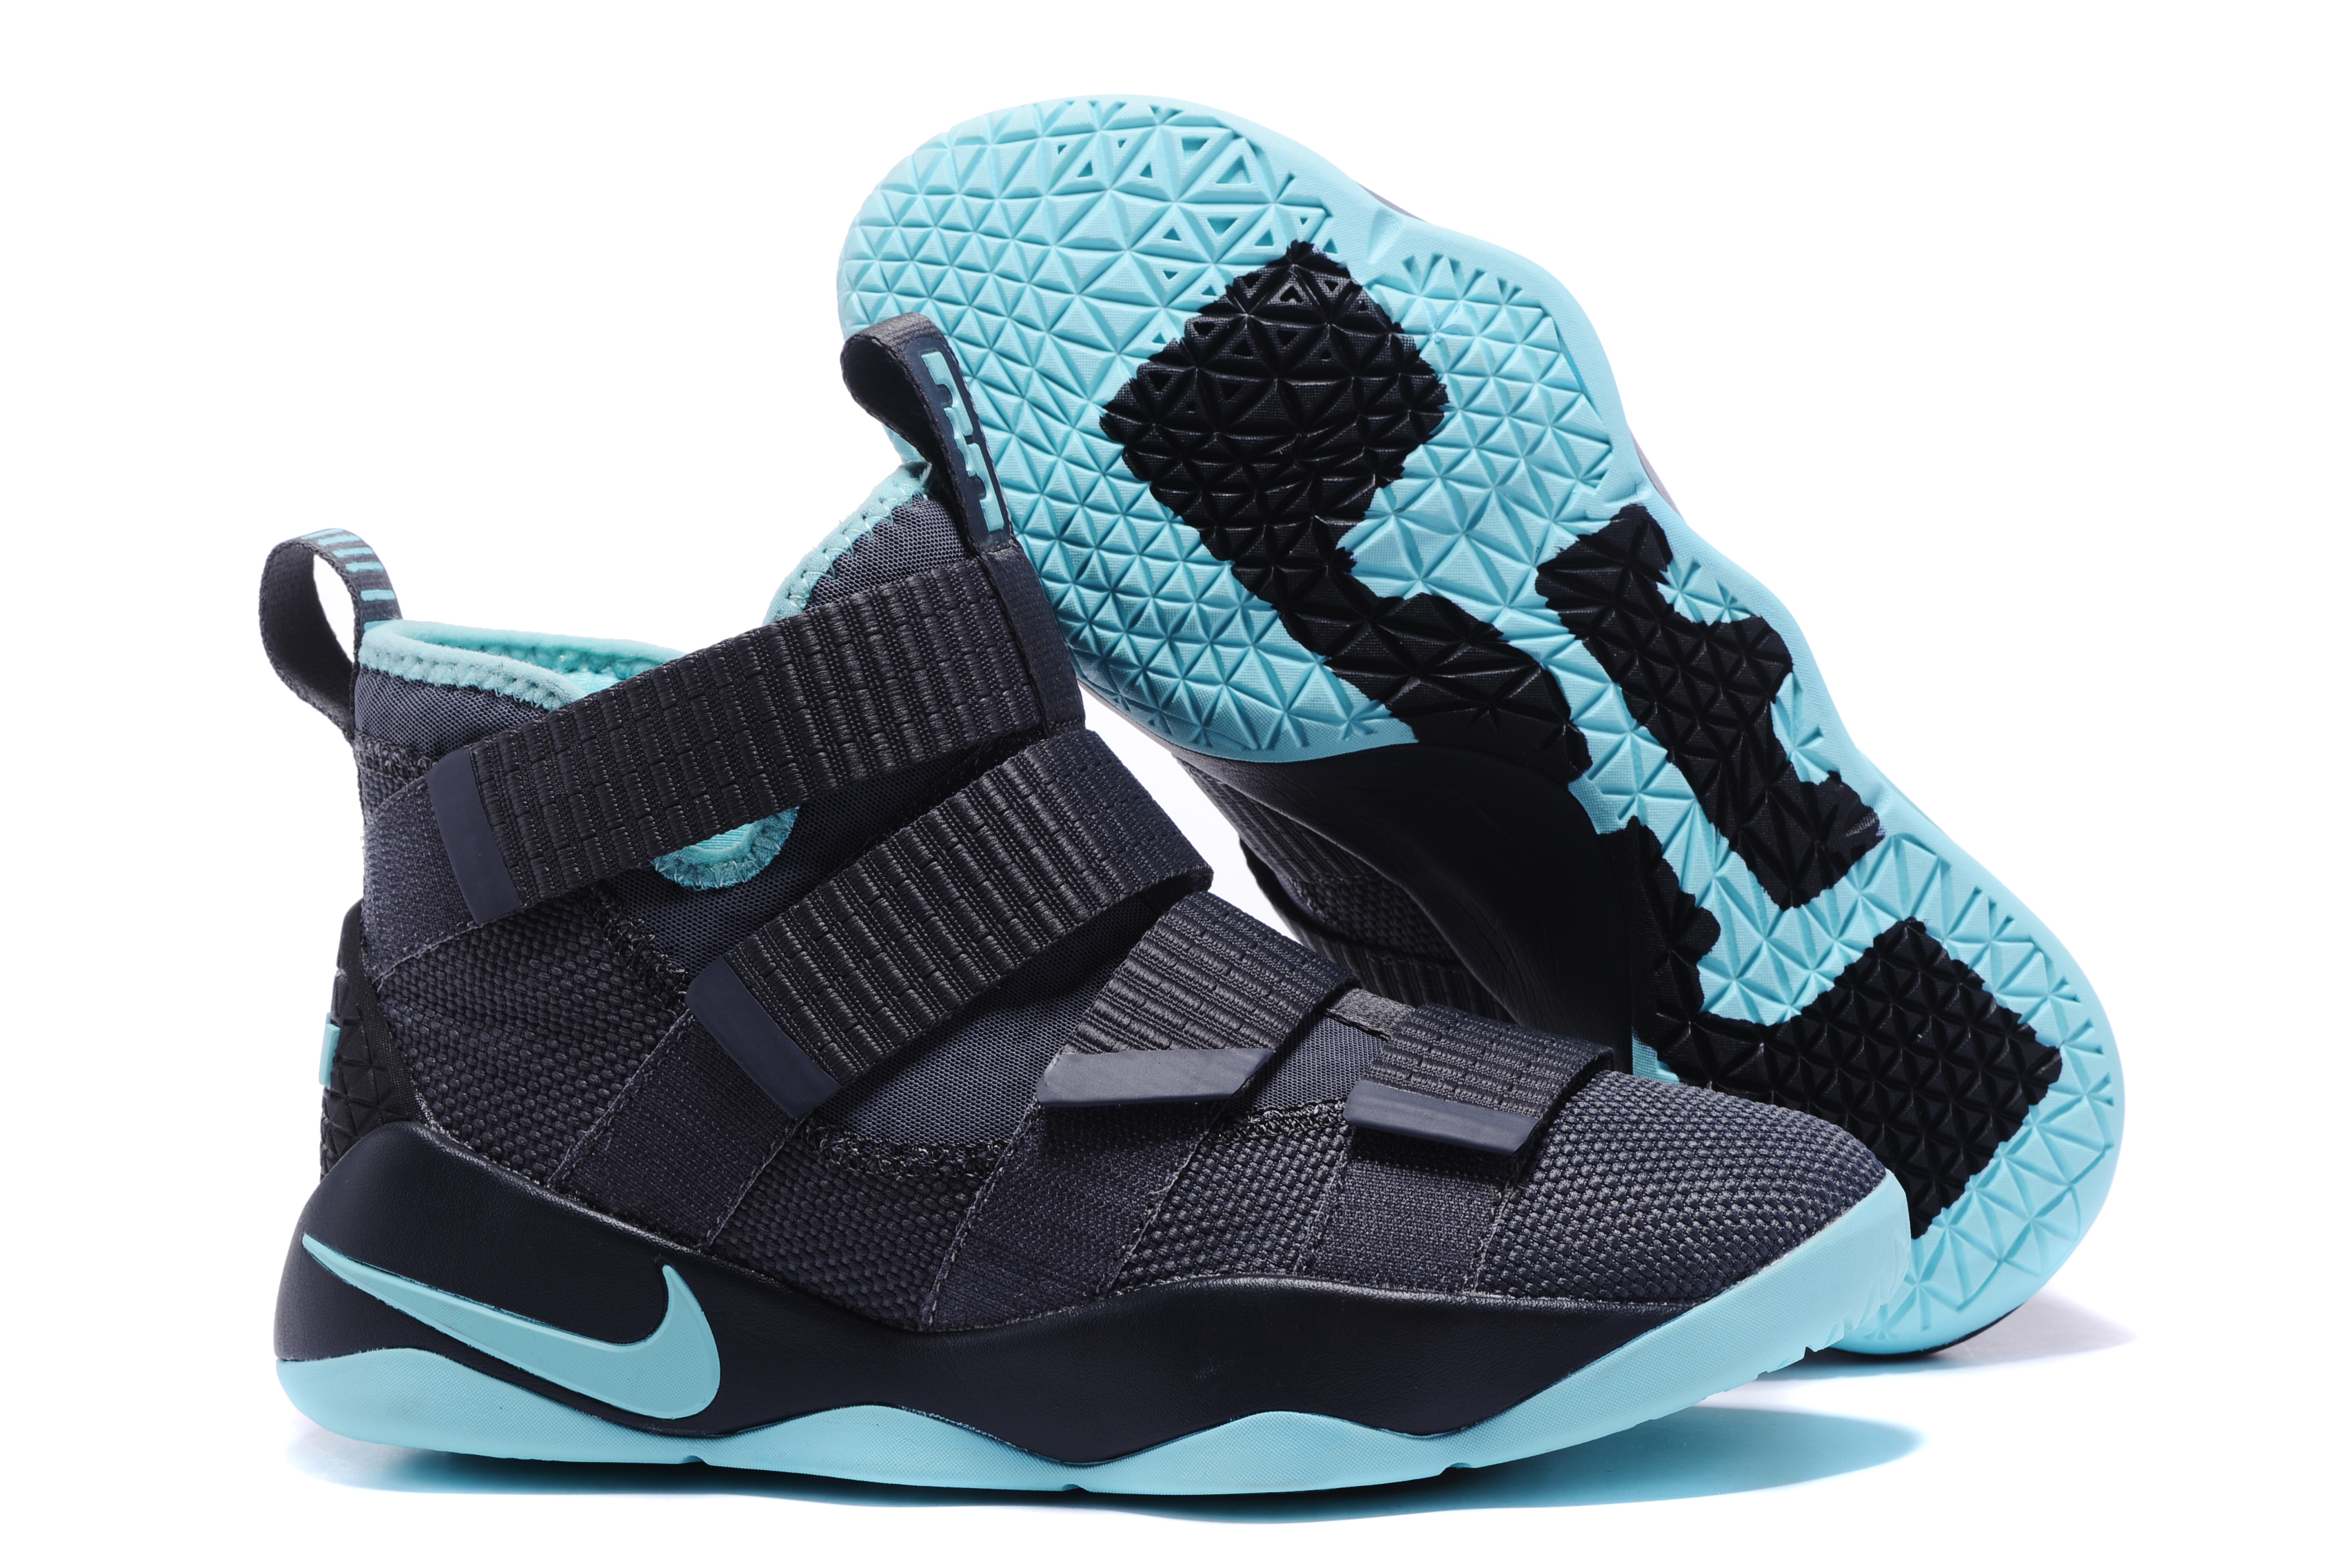 New Nike Lebron Soldier 11 Black Jade Blue Shoes